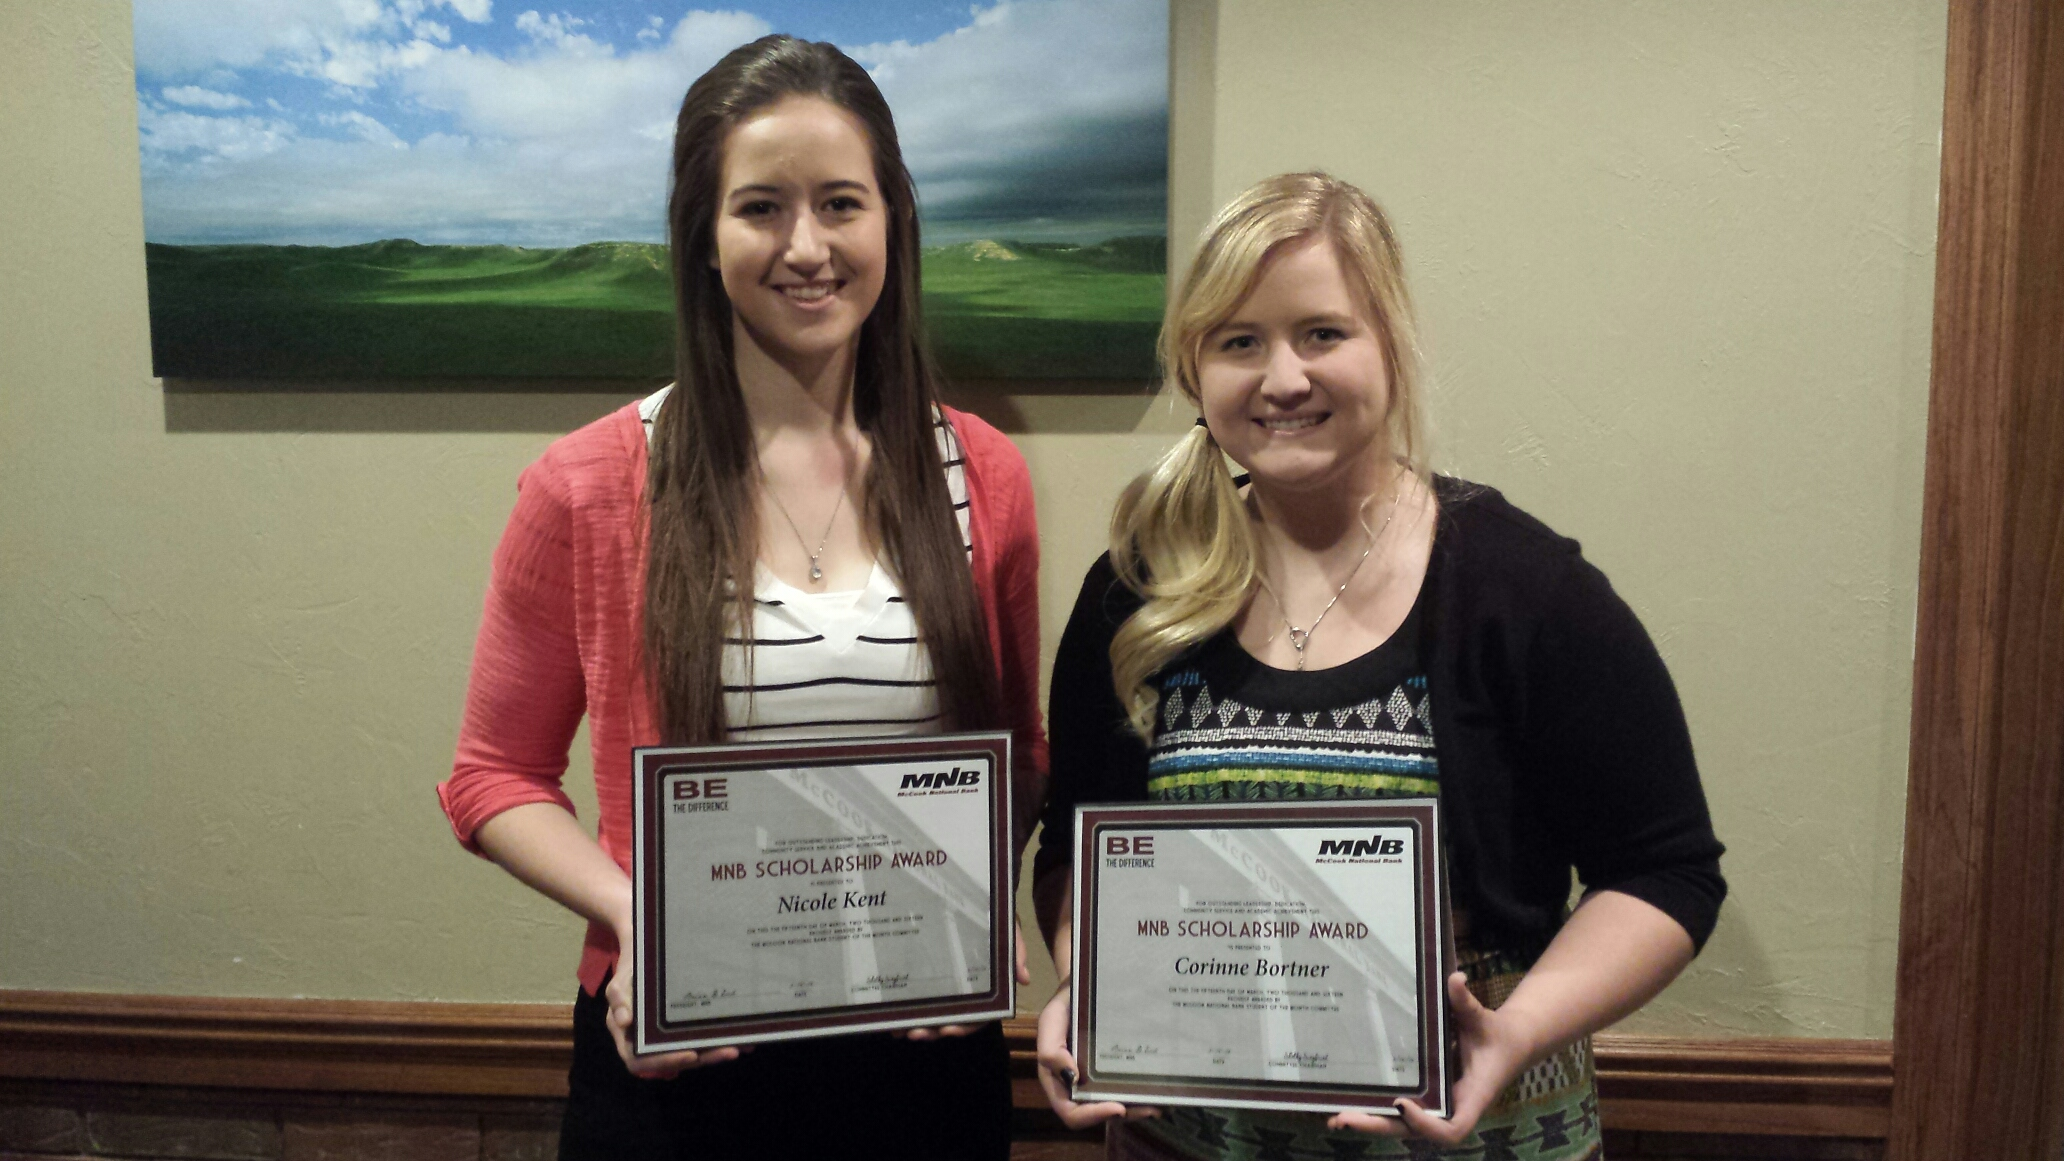 MNB Student of the Month Scholarship Winners Announced